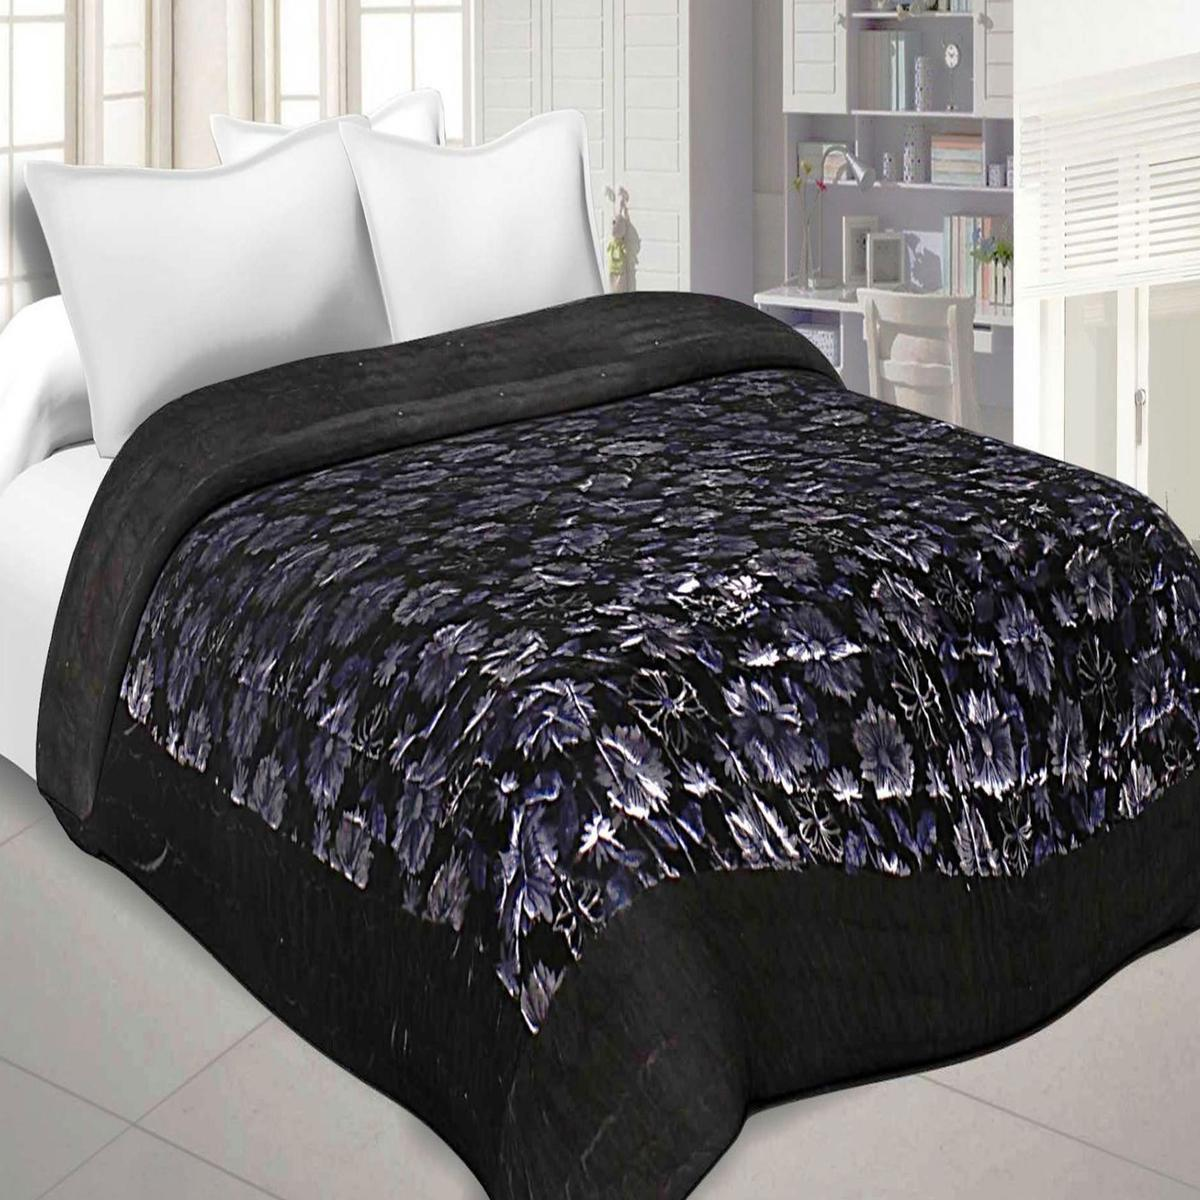 Trendy Black Colored Velvet Cloth Double Bed Quilt Jaipuri Razai